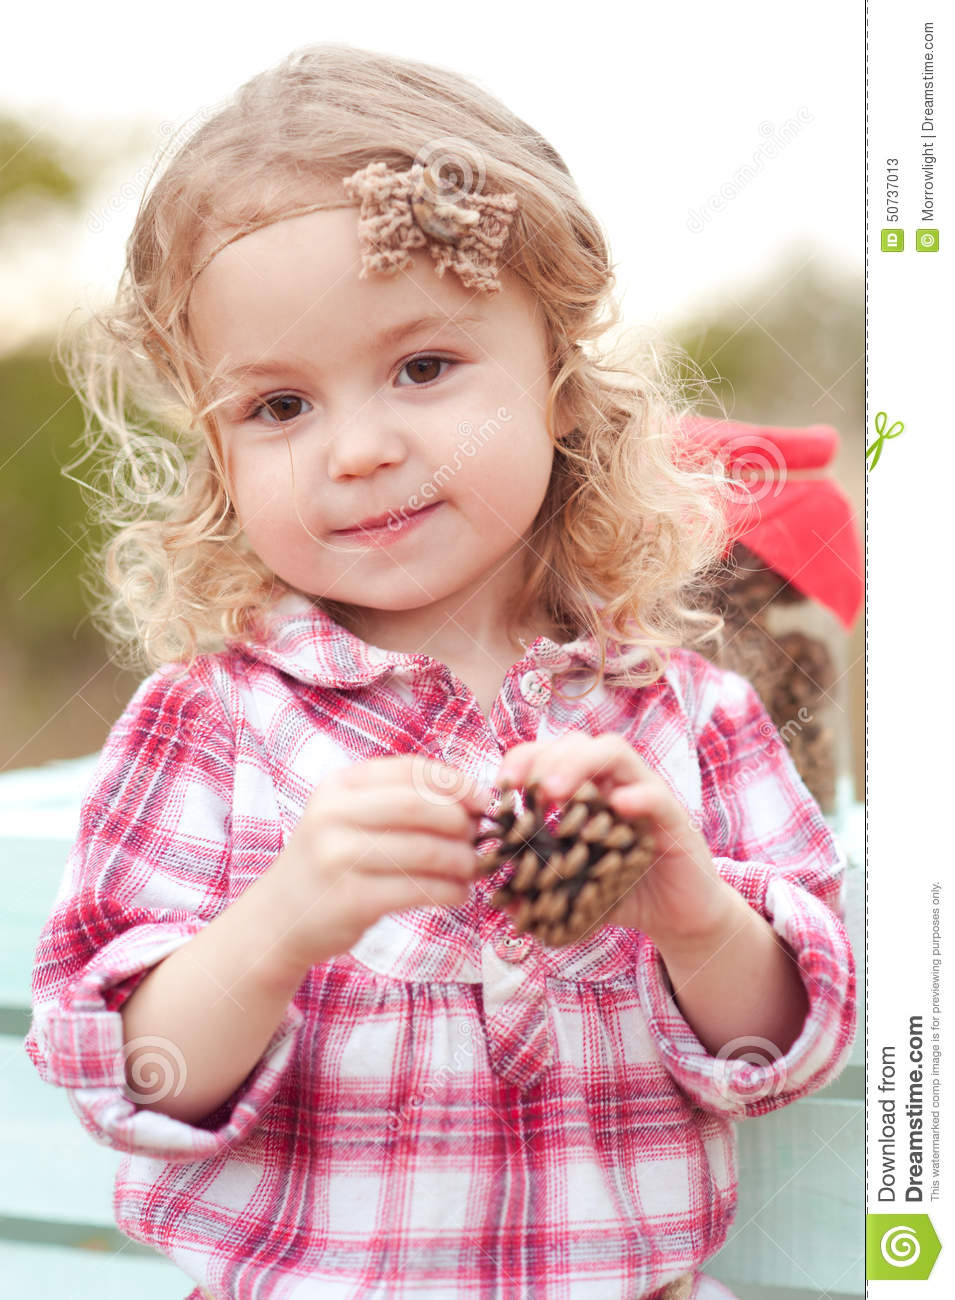 991ee8750c0de Cute baby girl outdoors stock image. Image of free